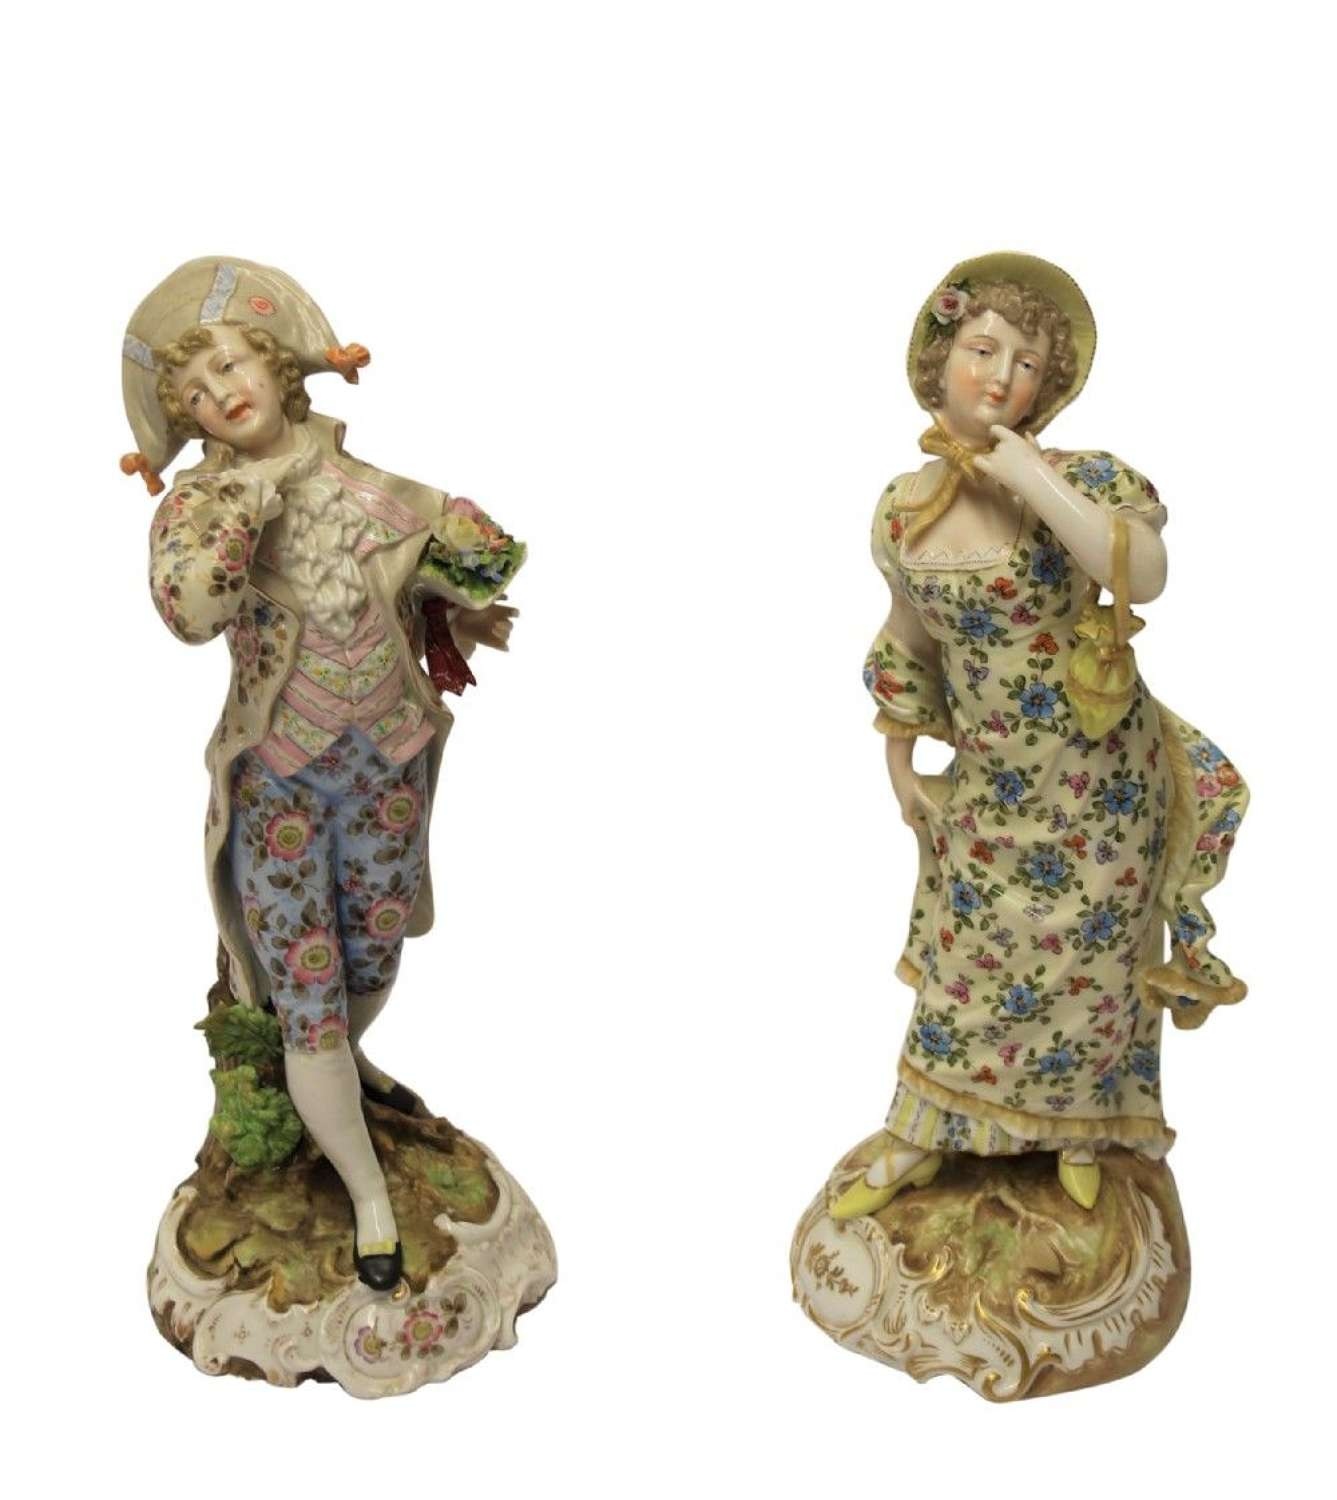 A Superb Pair Of Late 19th Century Rudolstadt Volkstedt Figures